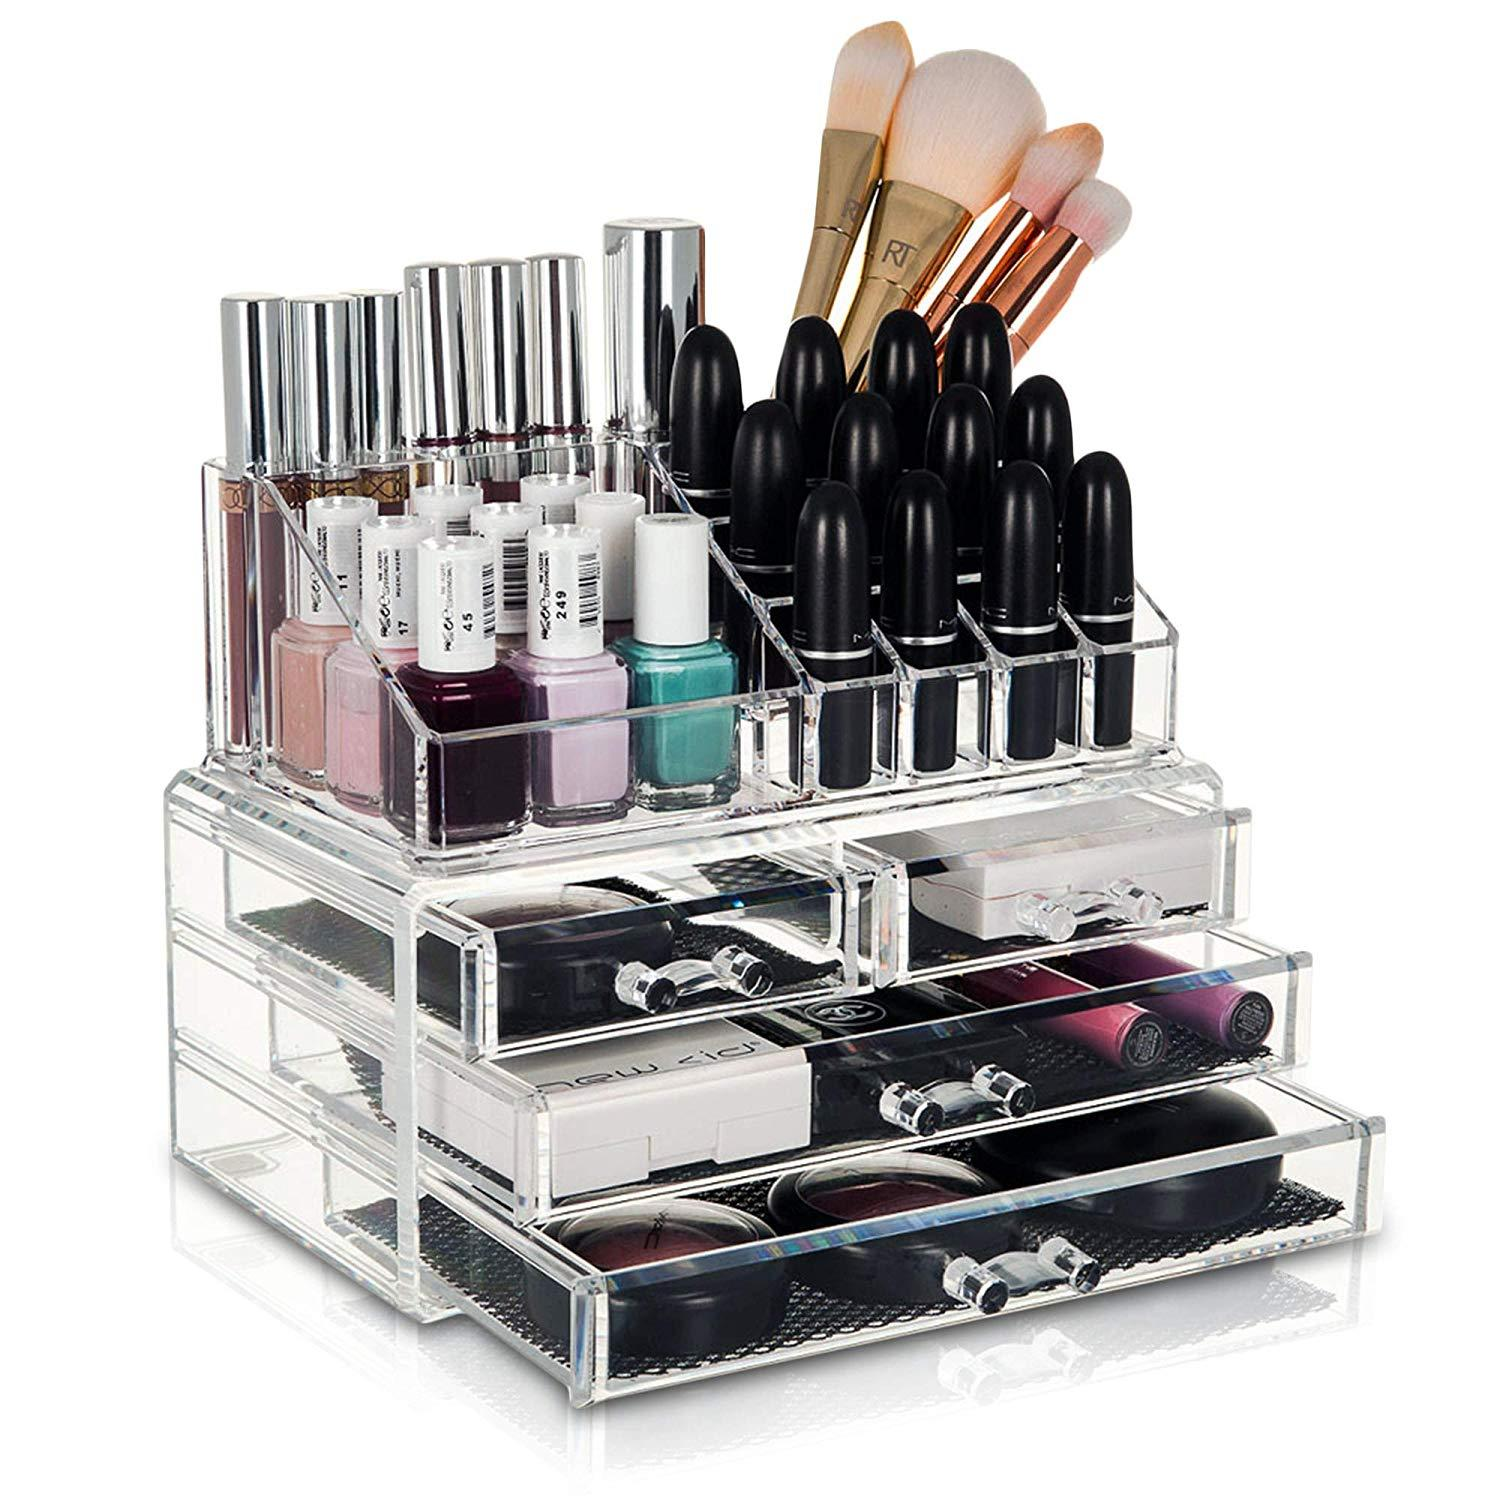 4 Dress Transparent Cosmetic Makeup Acrylic Organizer Drawers Set for Lipstick, Brushes, Bottles, Jewelry and More. Clear Case Display Rack Storage Holder